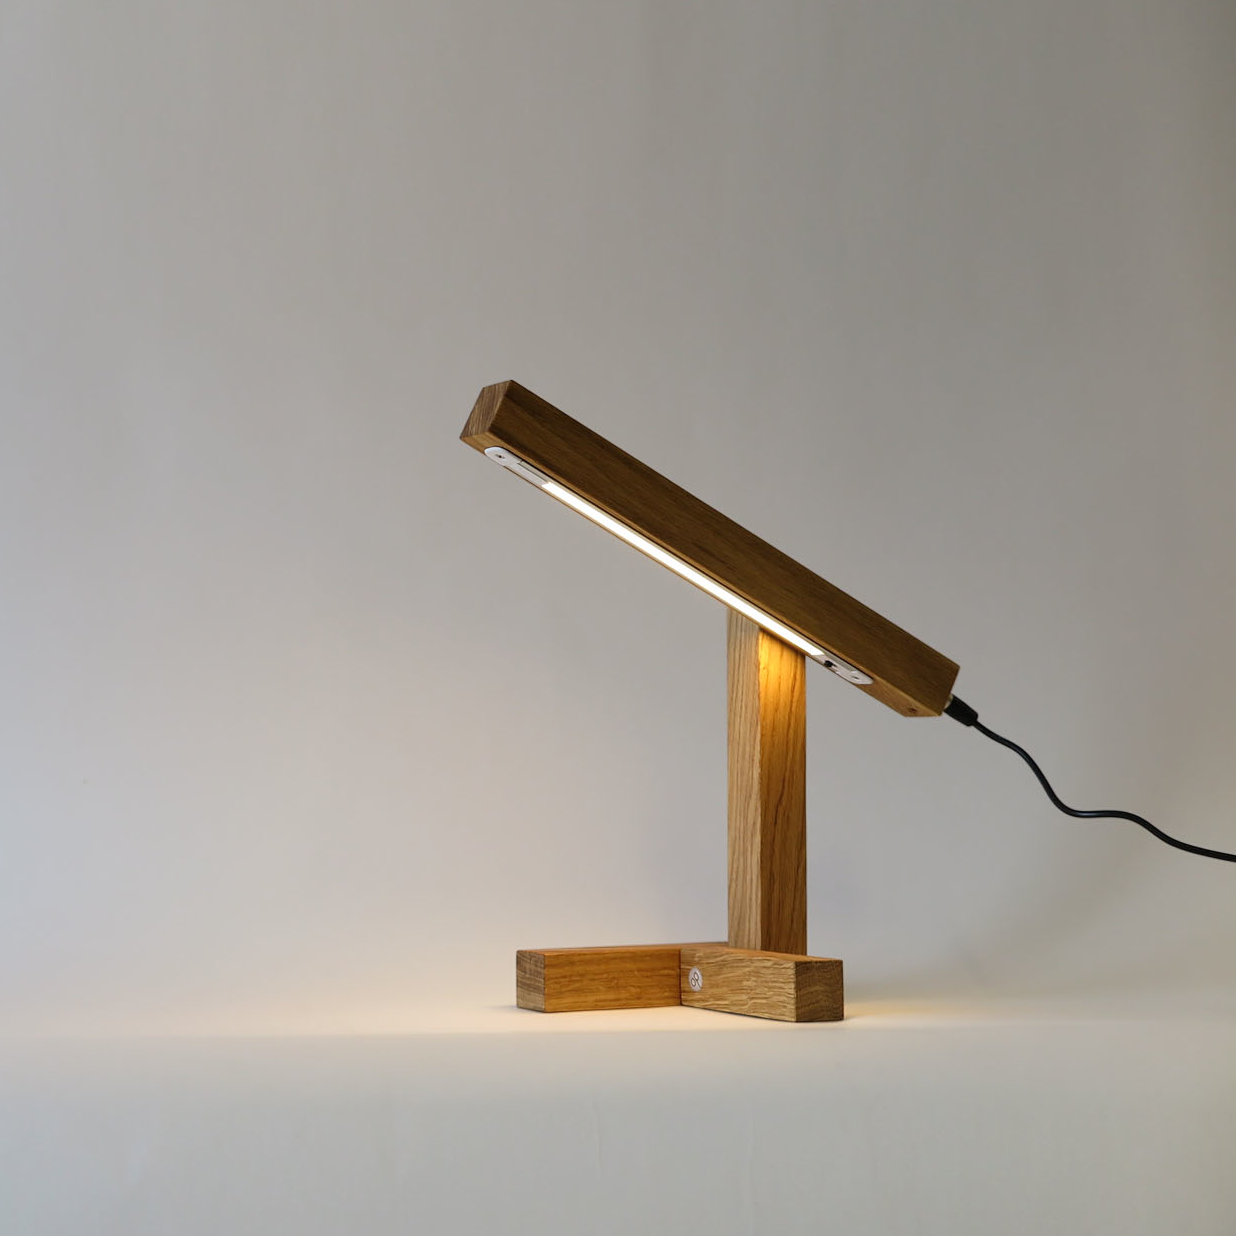 light on of tris lamp on the table